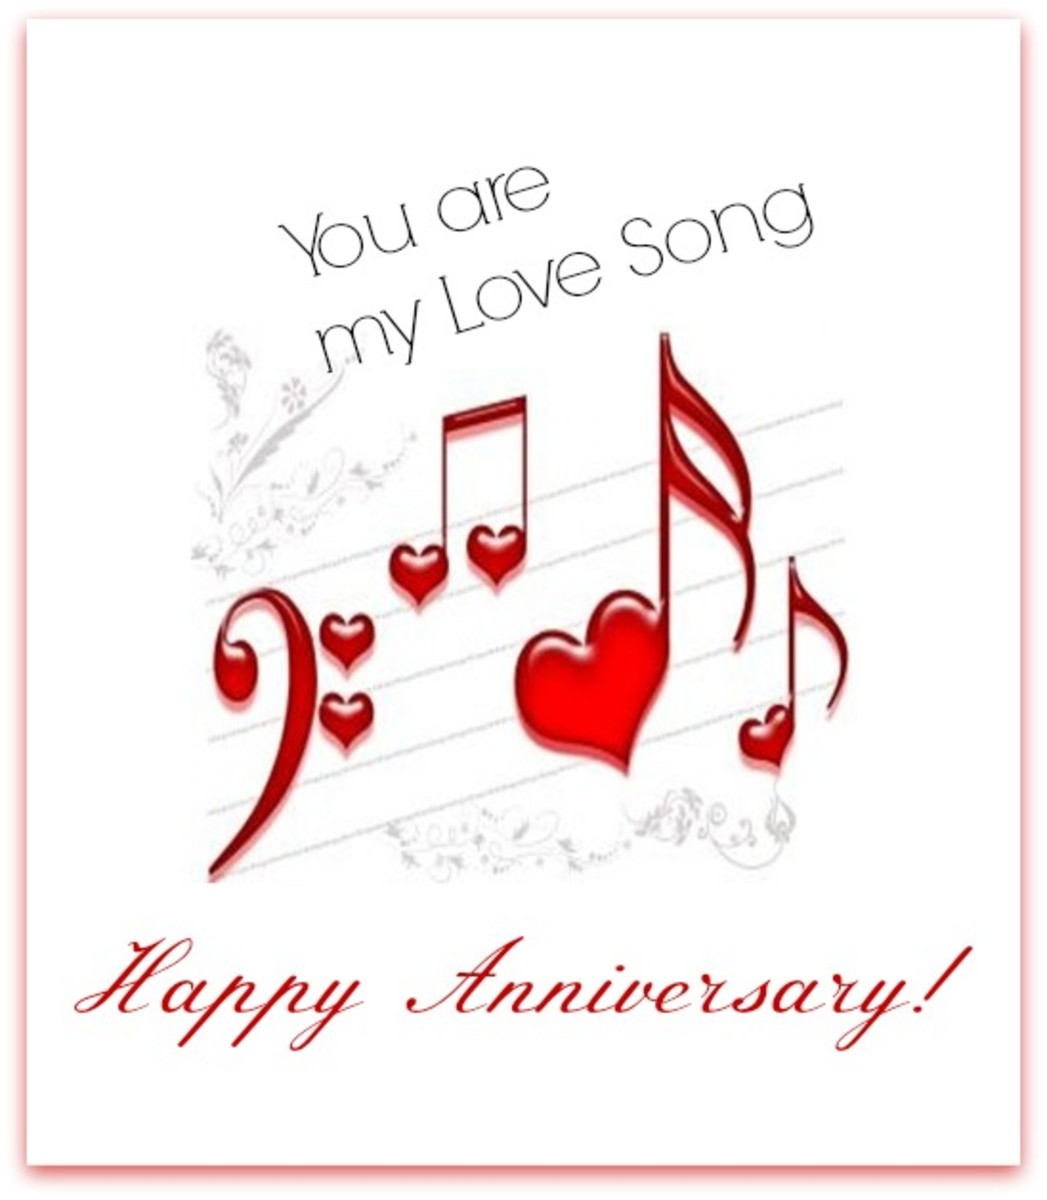 Love Song Anniversary Wish